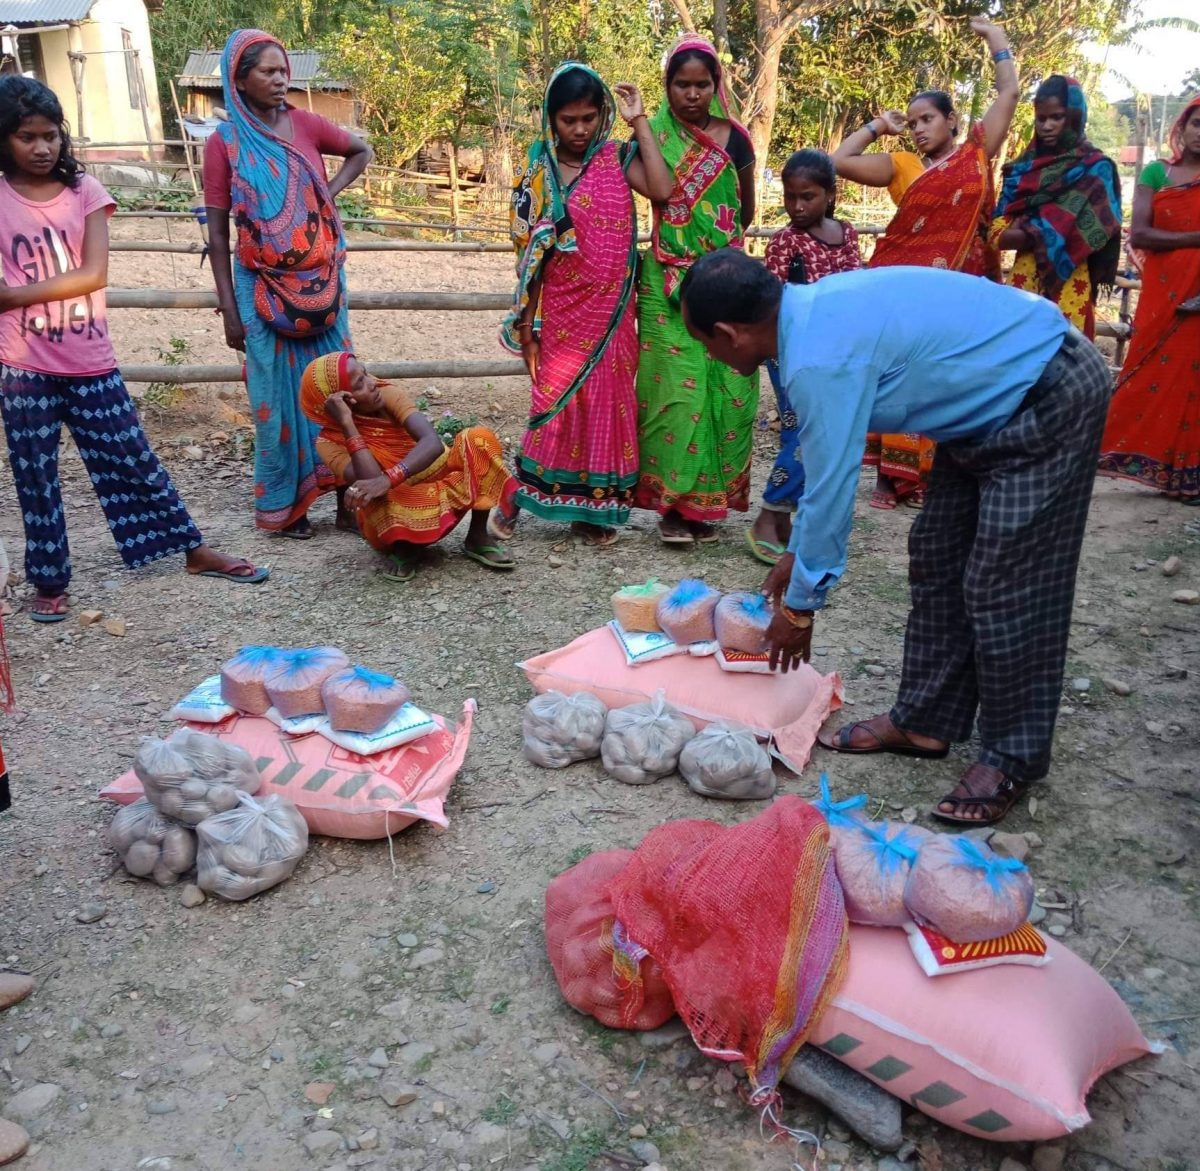 Man bending over relief supplies on the ground and women standing behind.